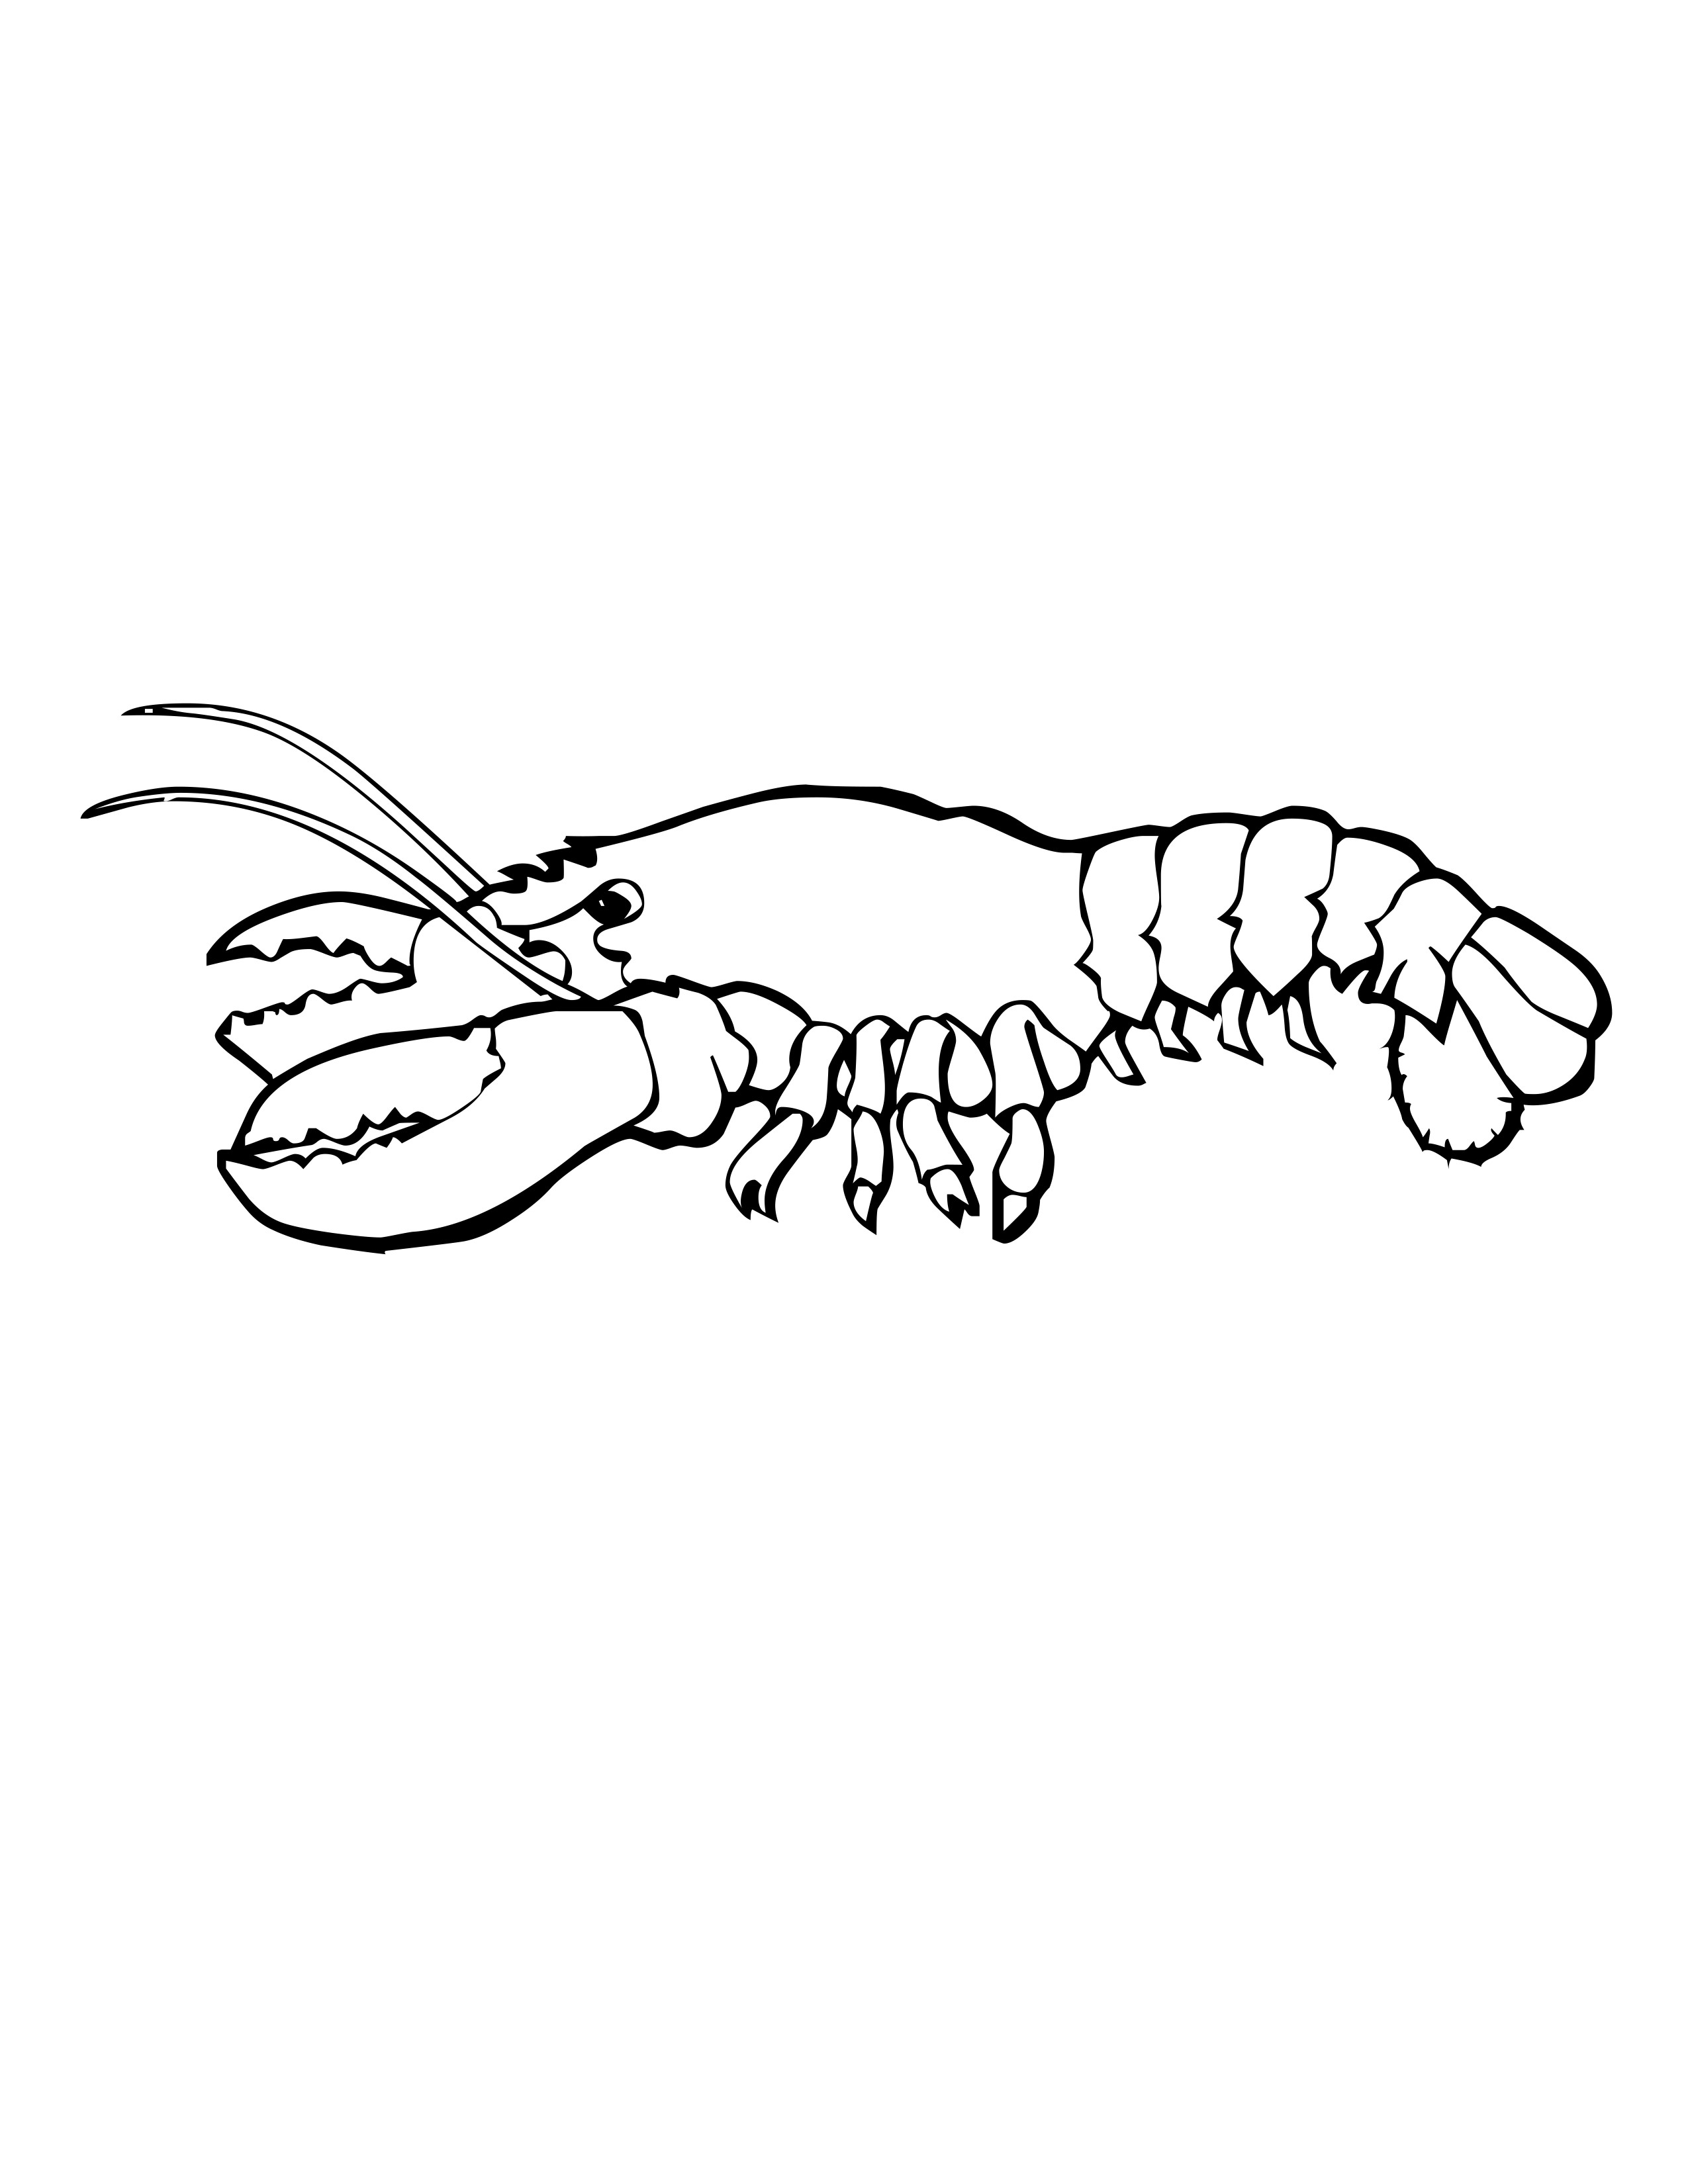 Lobster Printable Coloring Pages